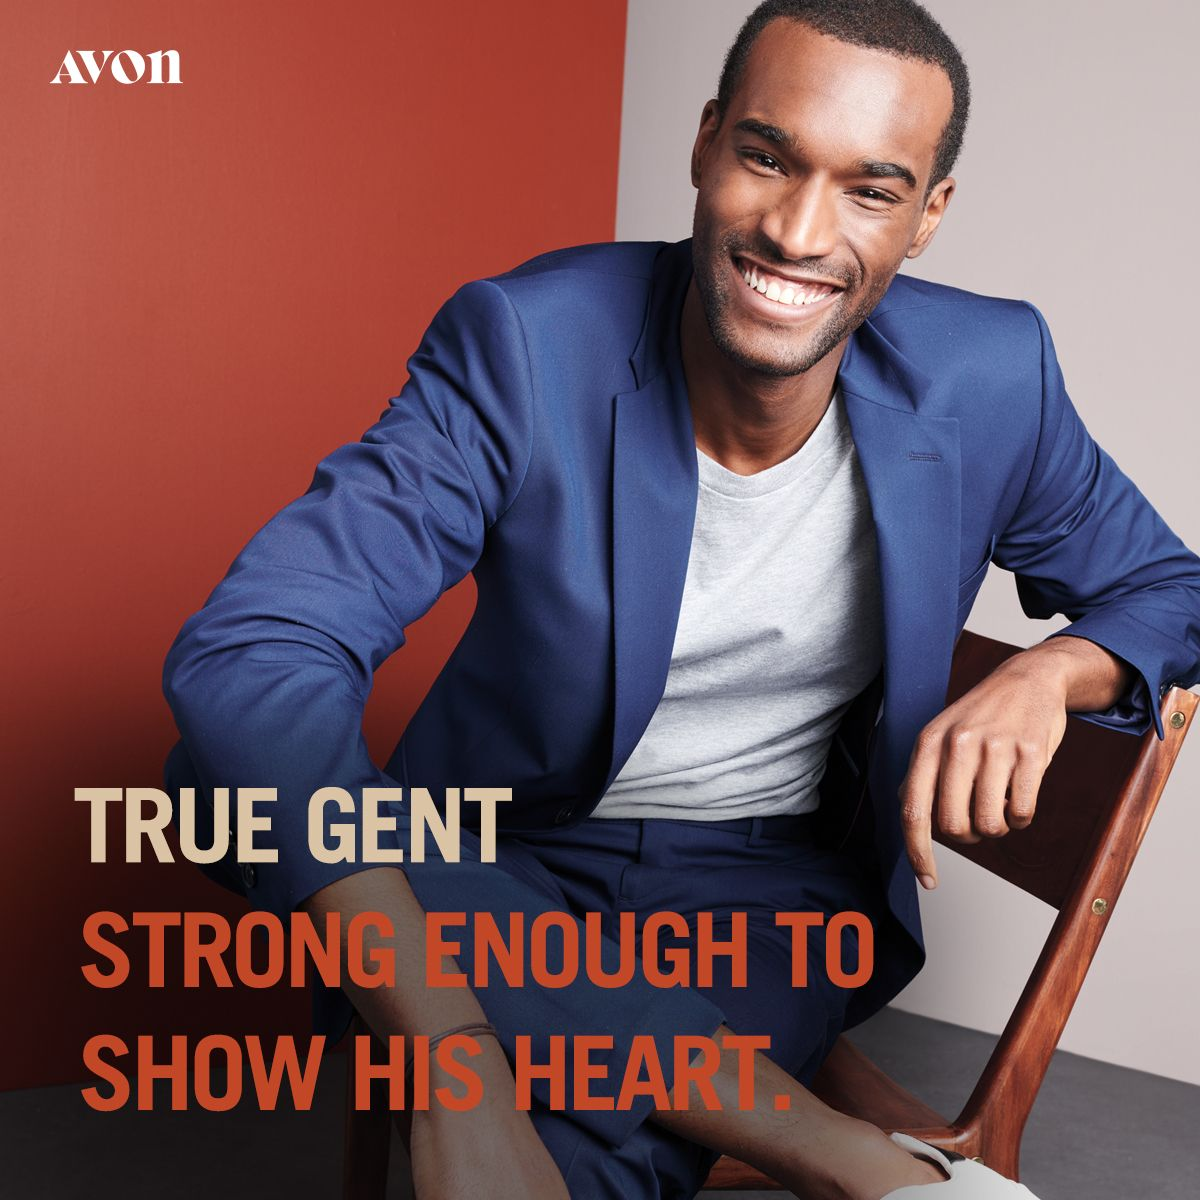 For The Man Who Is Strong Enough To Show His Heart True Gent Captures The Fresh Scent Of Laurel Leaf Tobacco And Suede Which Wi Avon Avon Fragrance Avon True